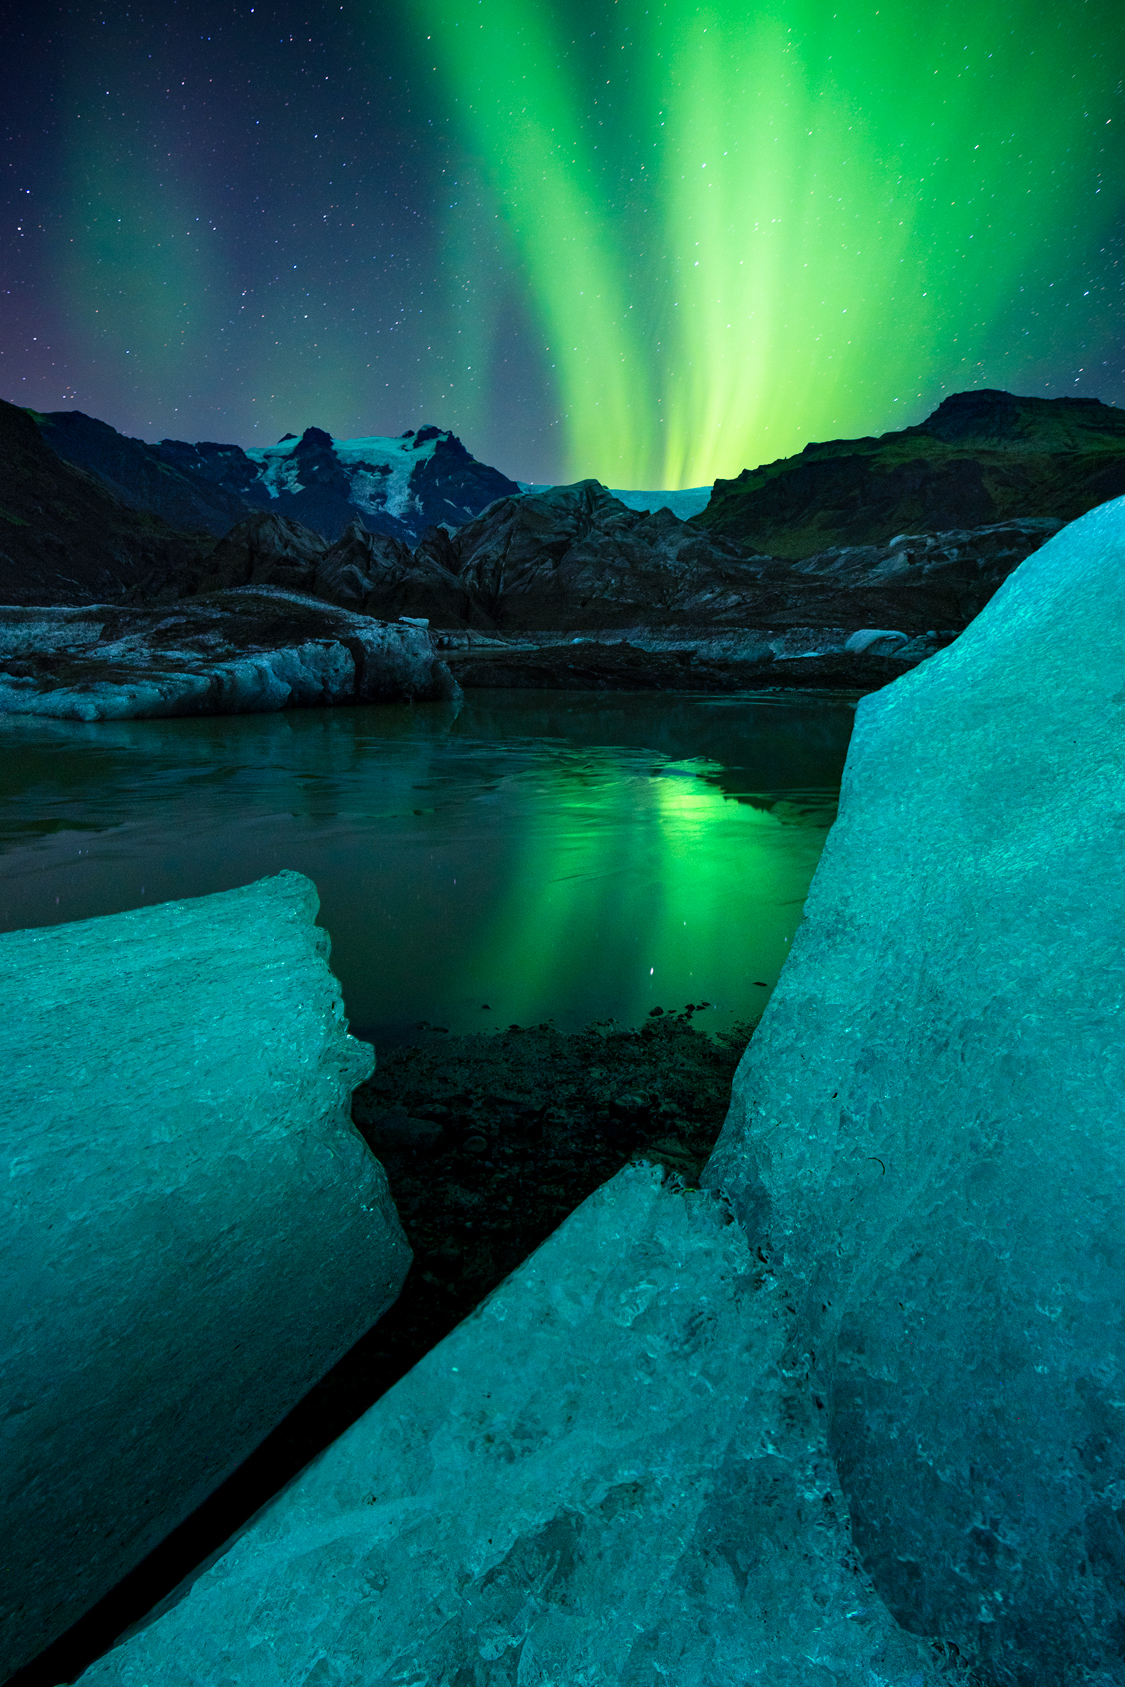 Ice pieces and aurora, Iceland